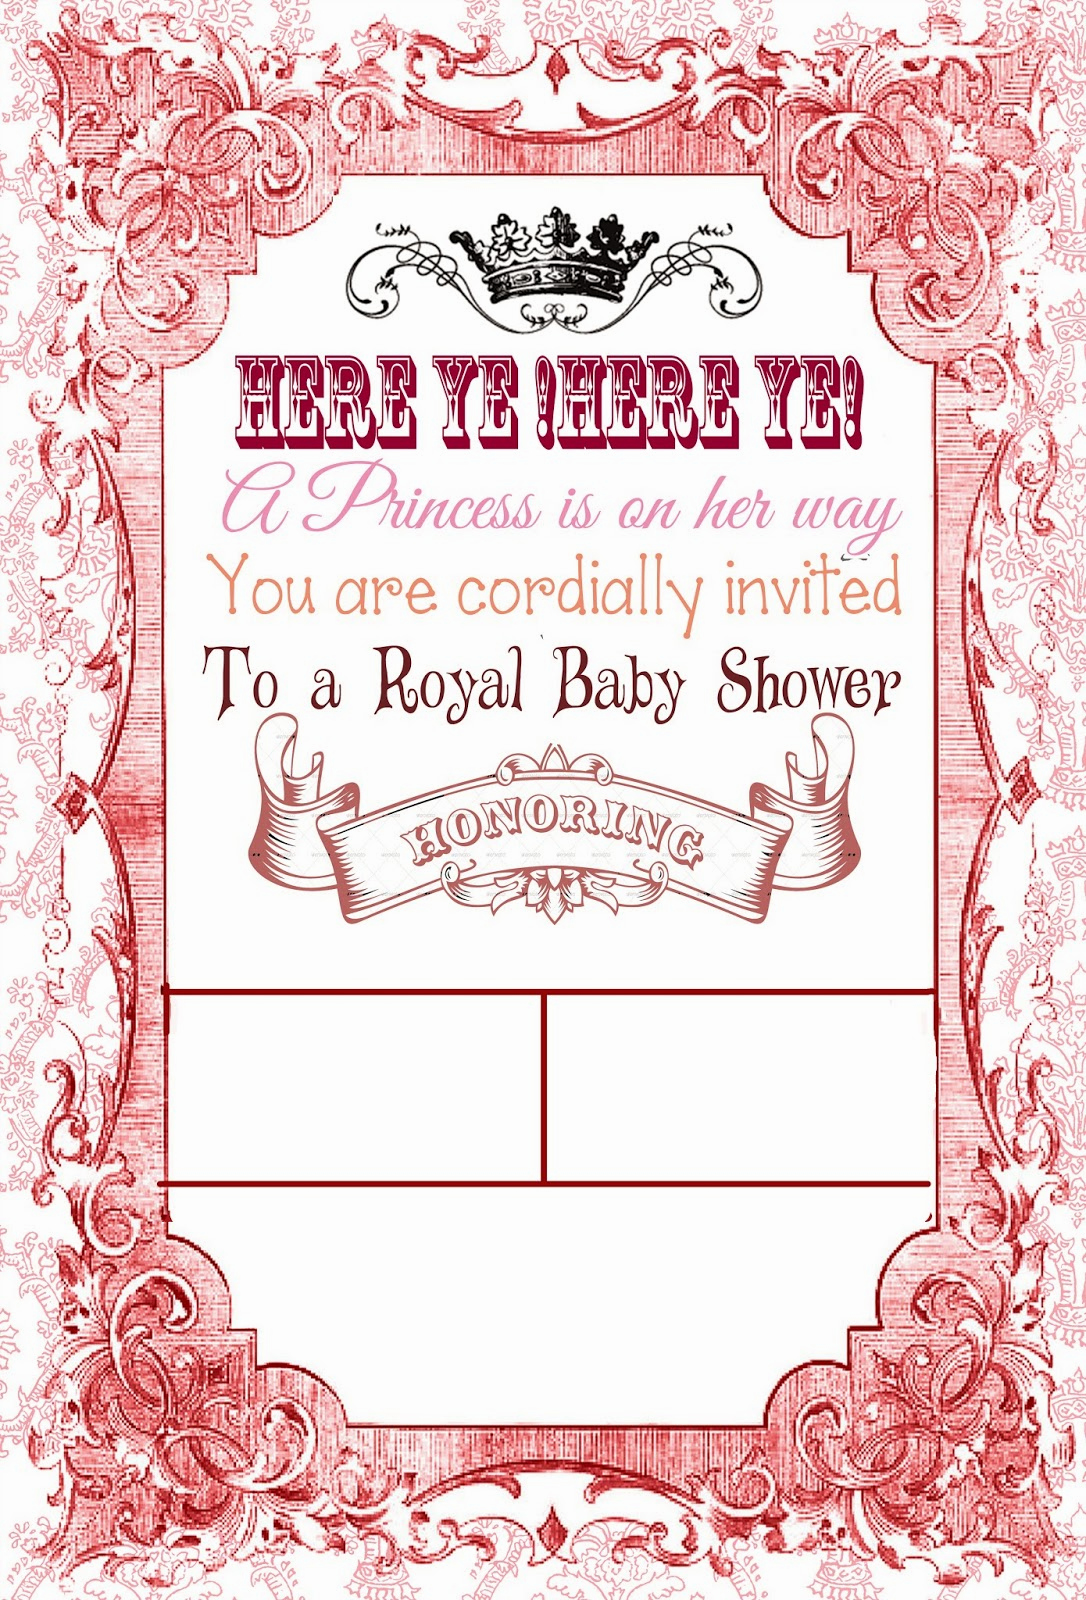 Royal Baby Shower Invitation Templates Lovely I Do A Dime Free Royal Baby Shower Invite Template